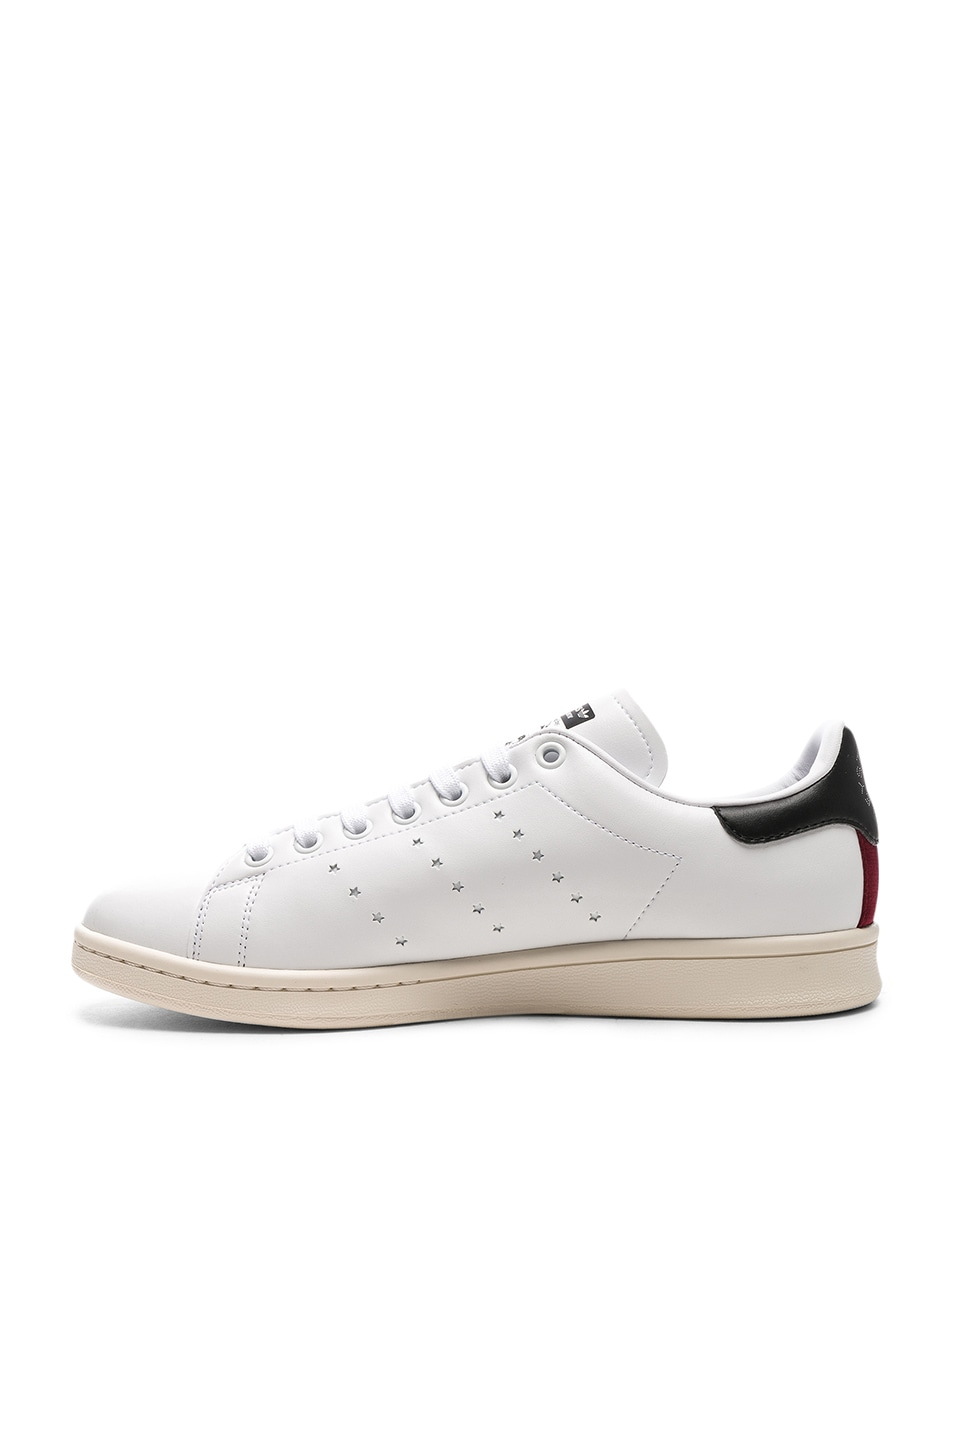 Image 5 of Stella McCartney Low Top Sneakers in White & Black